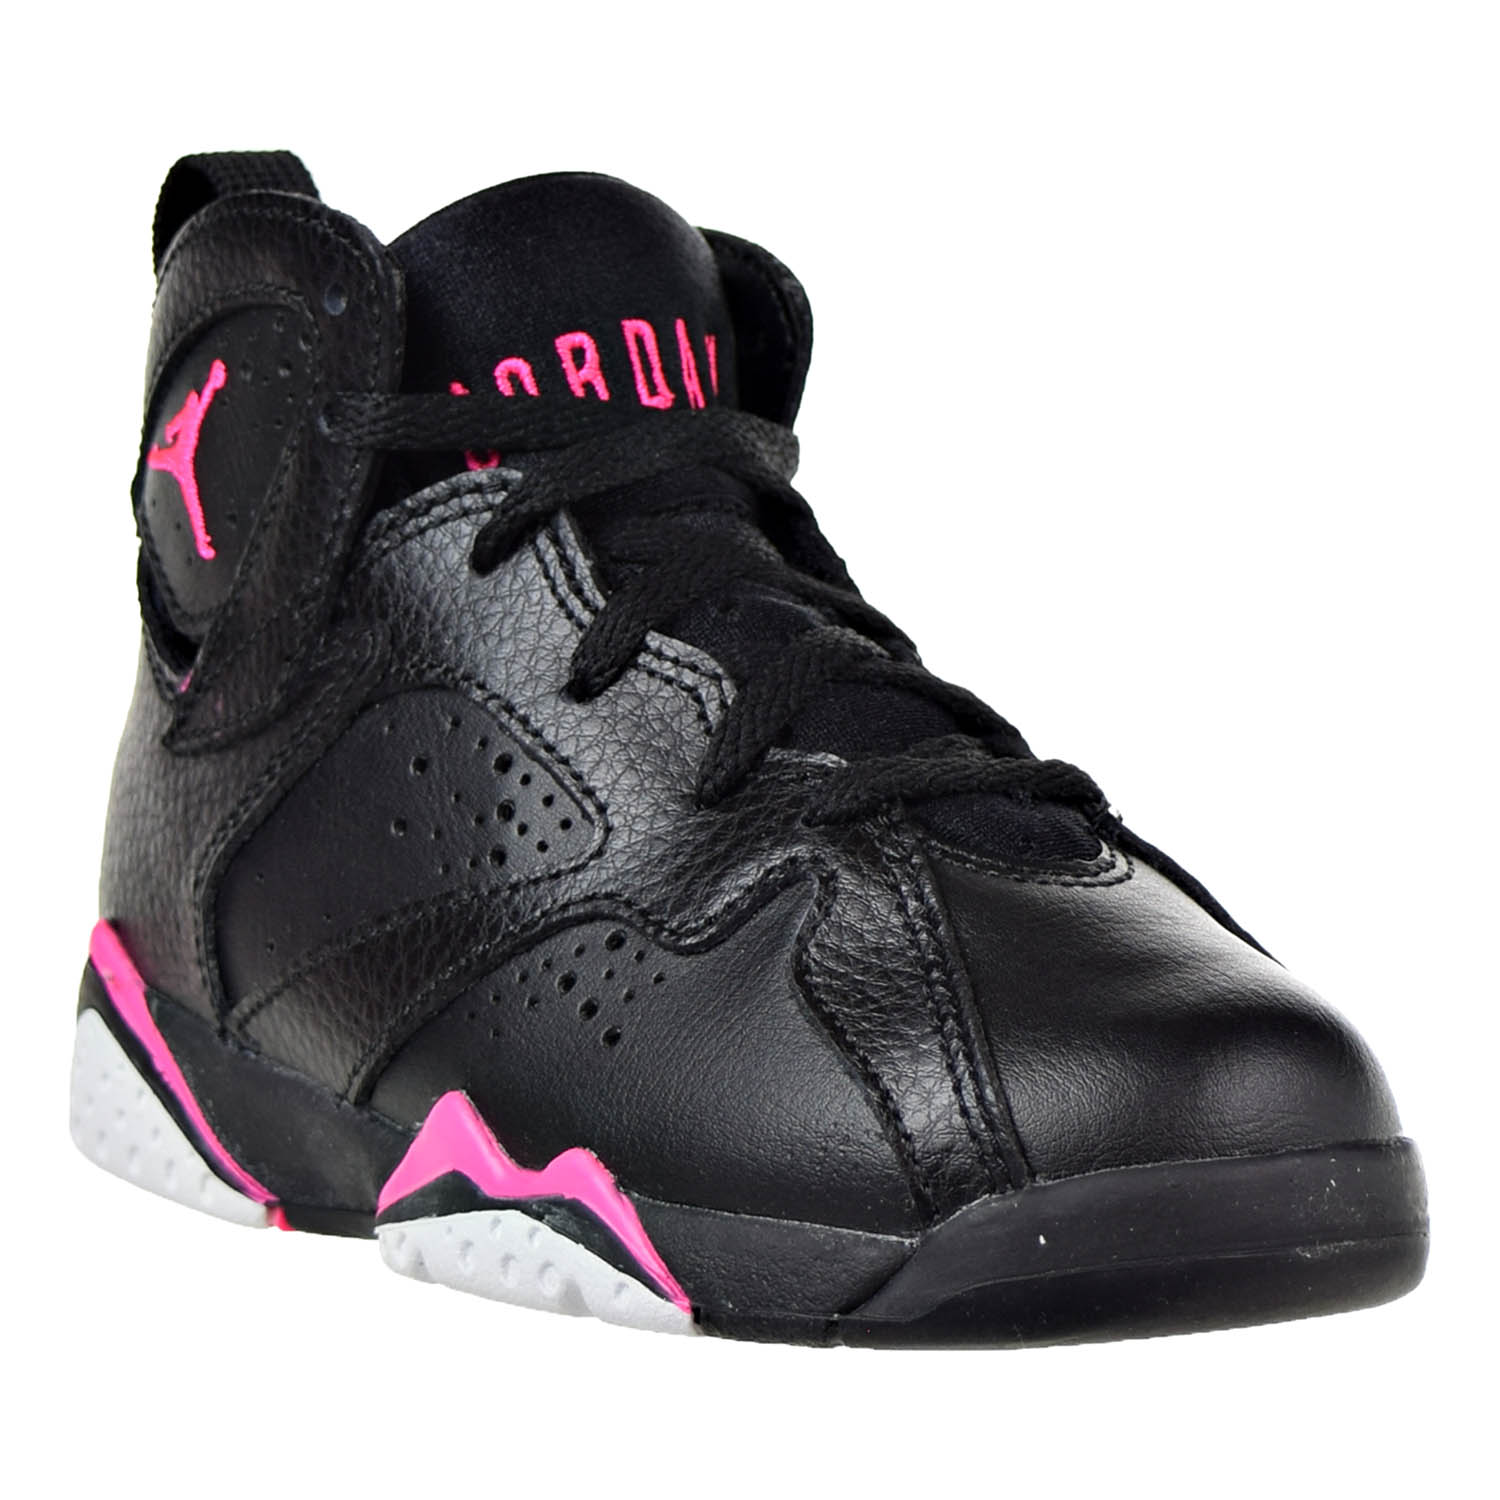 Jordan 7 Retro GP Little Kids (PS) Shoes Black/Hyper Pink 442961-018